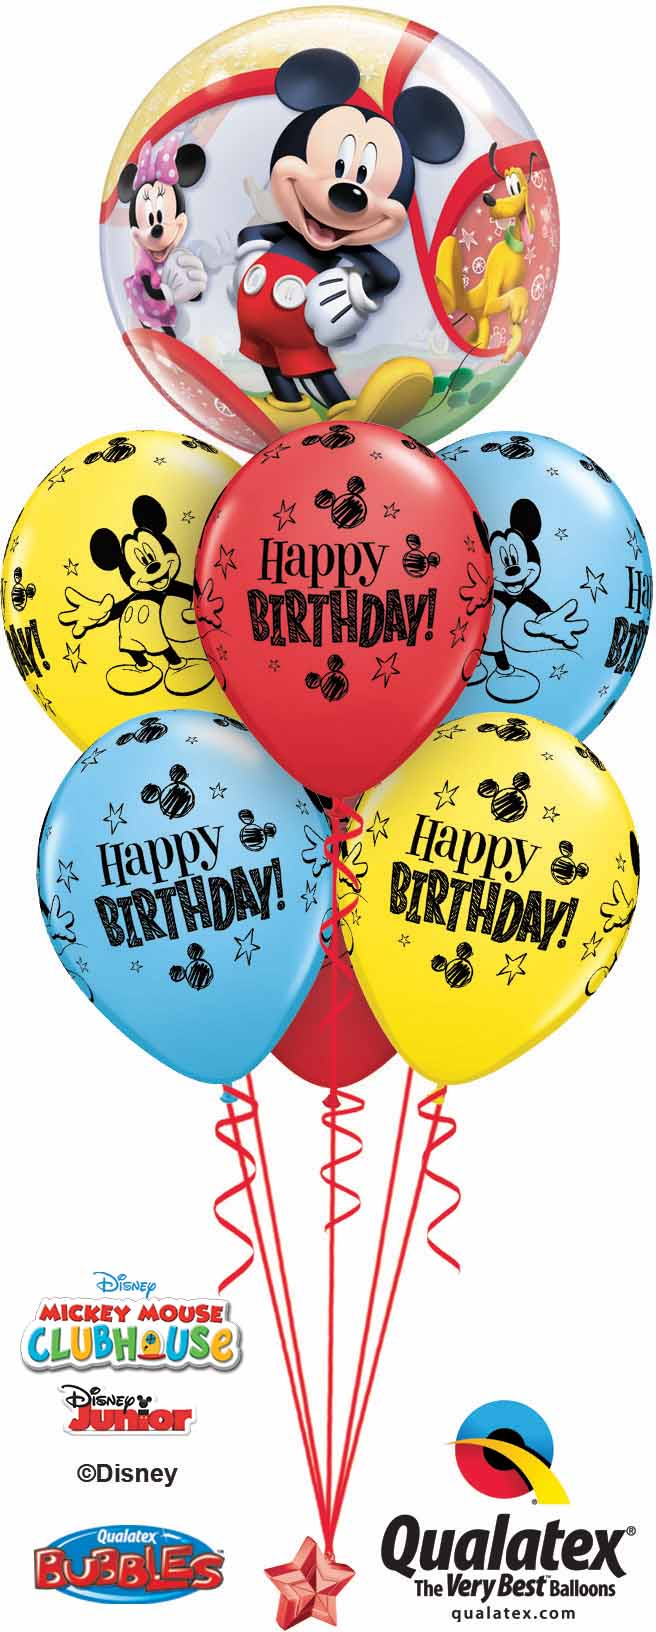 41067 18704 Mickey Mouse Birthday Bubble Luxury